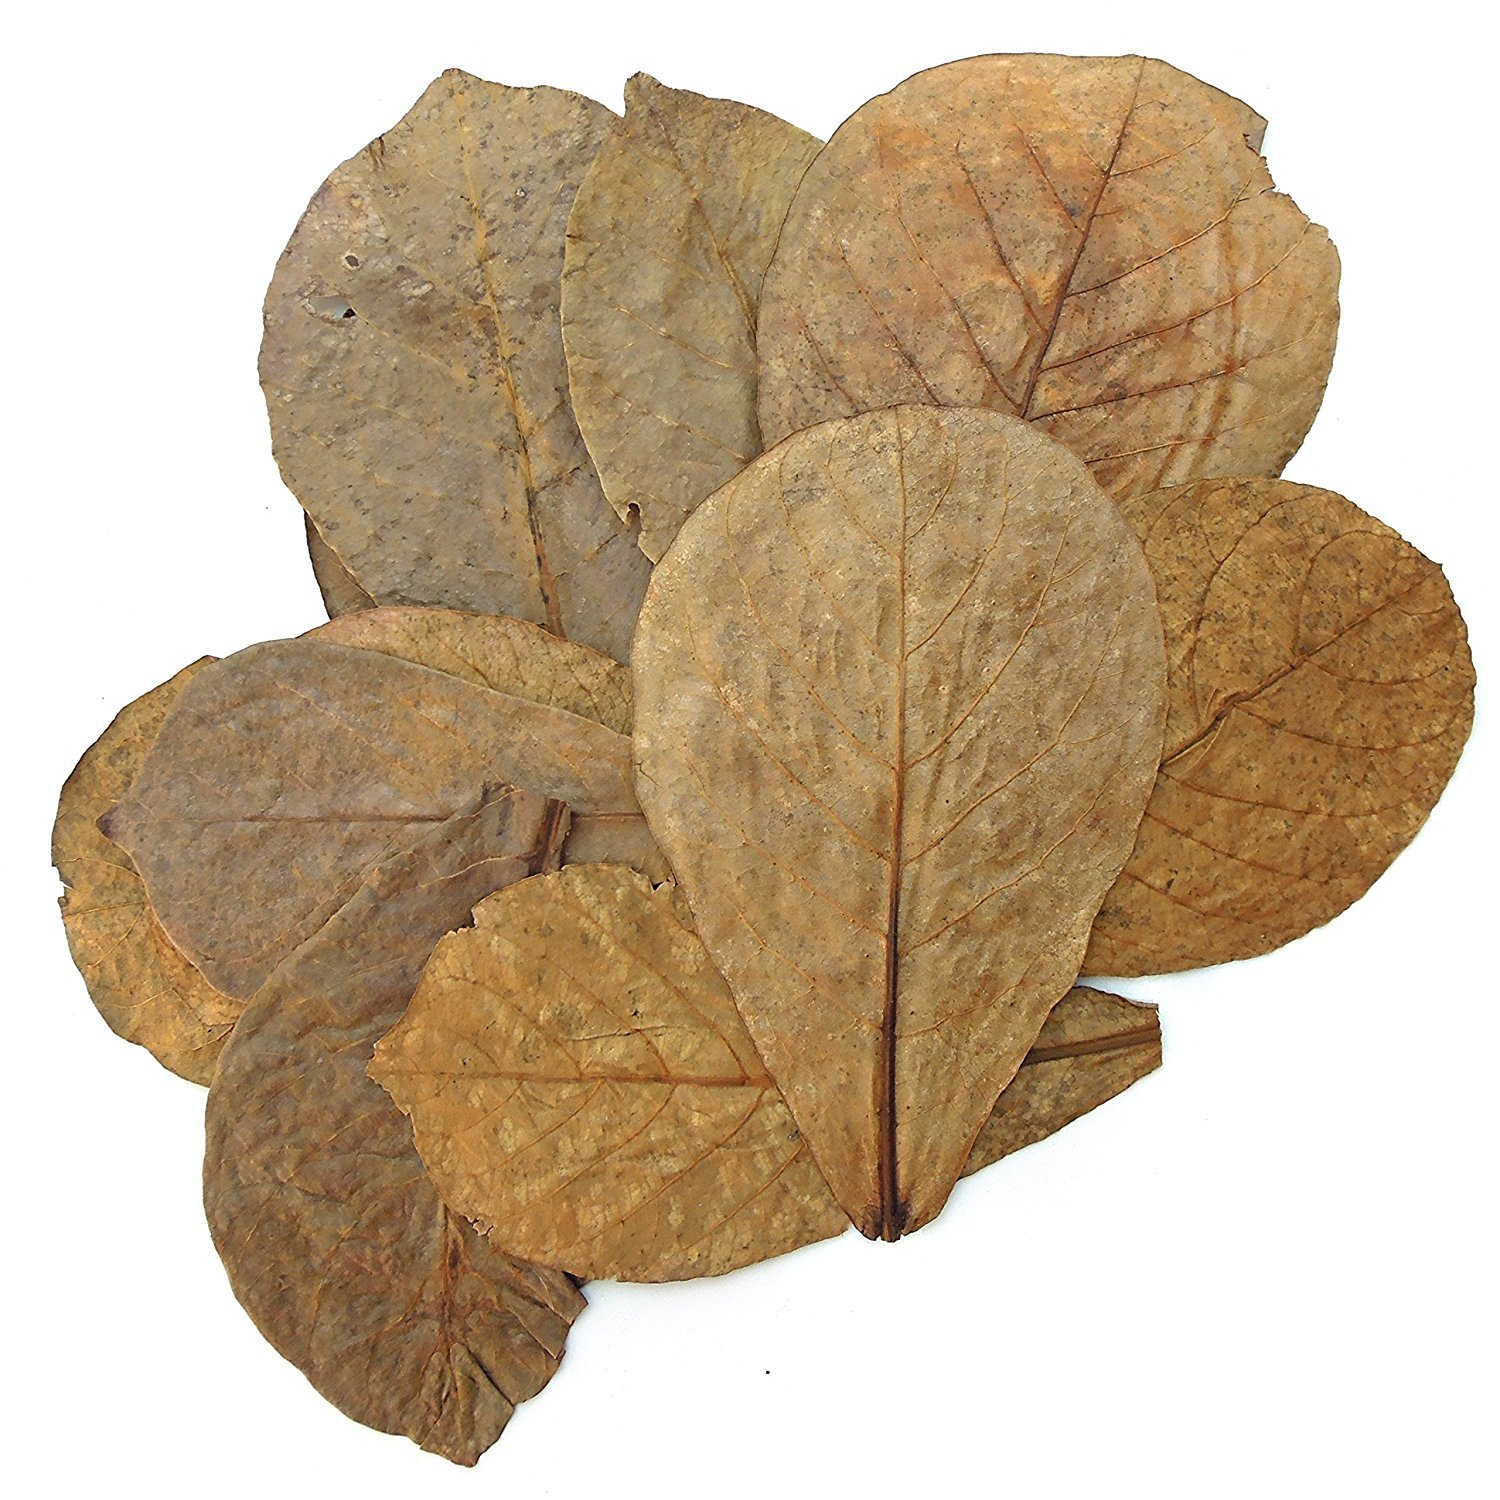 Tantora Premium Grade Catappa Indian Almond Leaves Size Medium 50 Leaves 5-7 Inches by Tantora